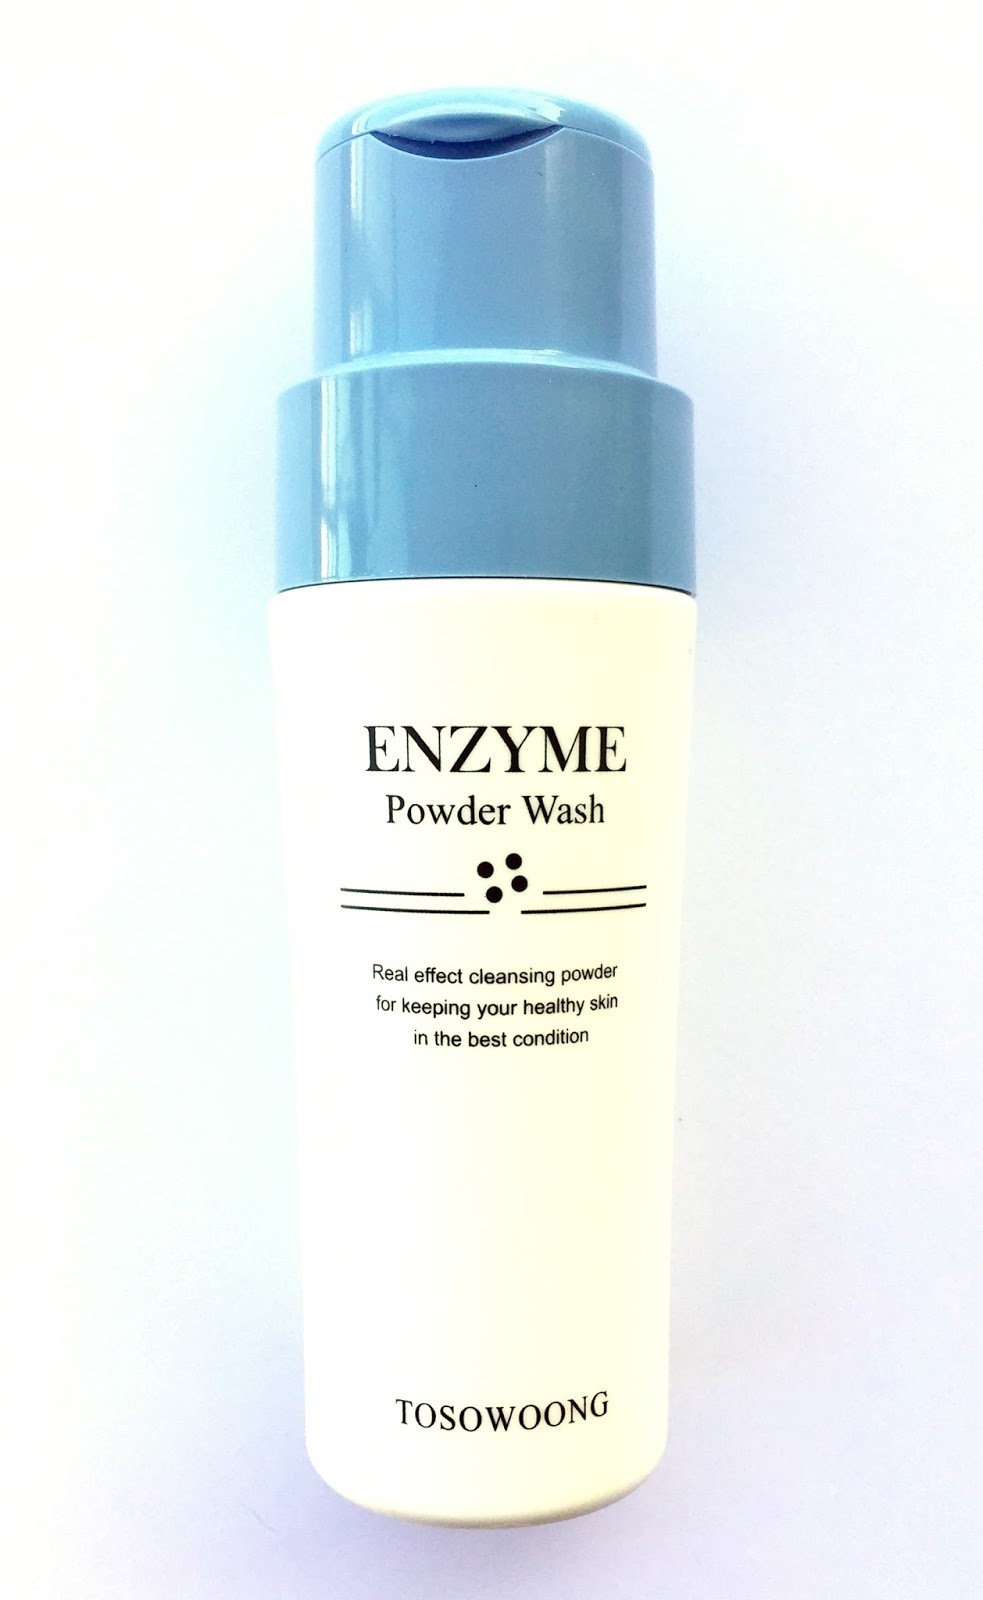 Korean Beauty Dream Tosowoong Enzyme Powder Wash